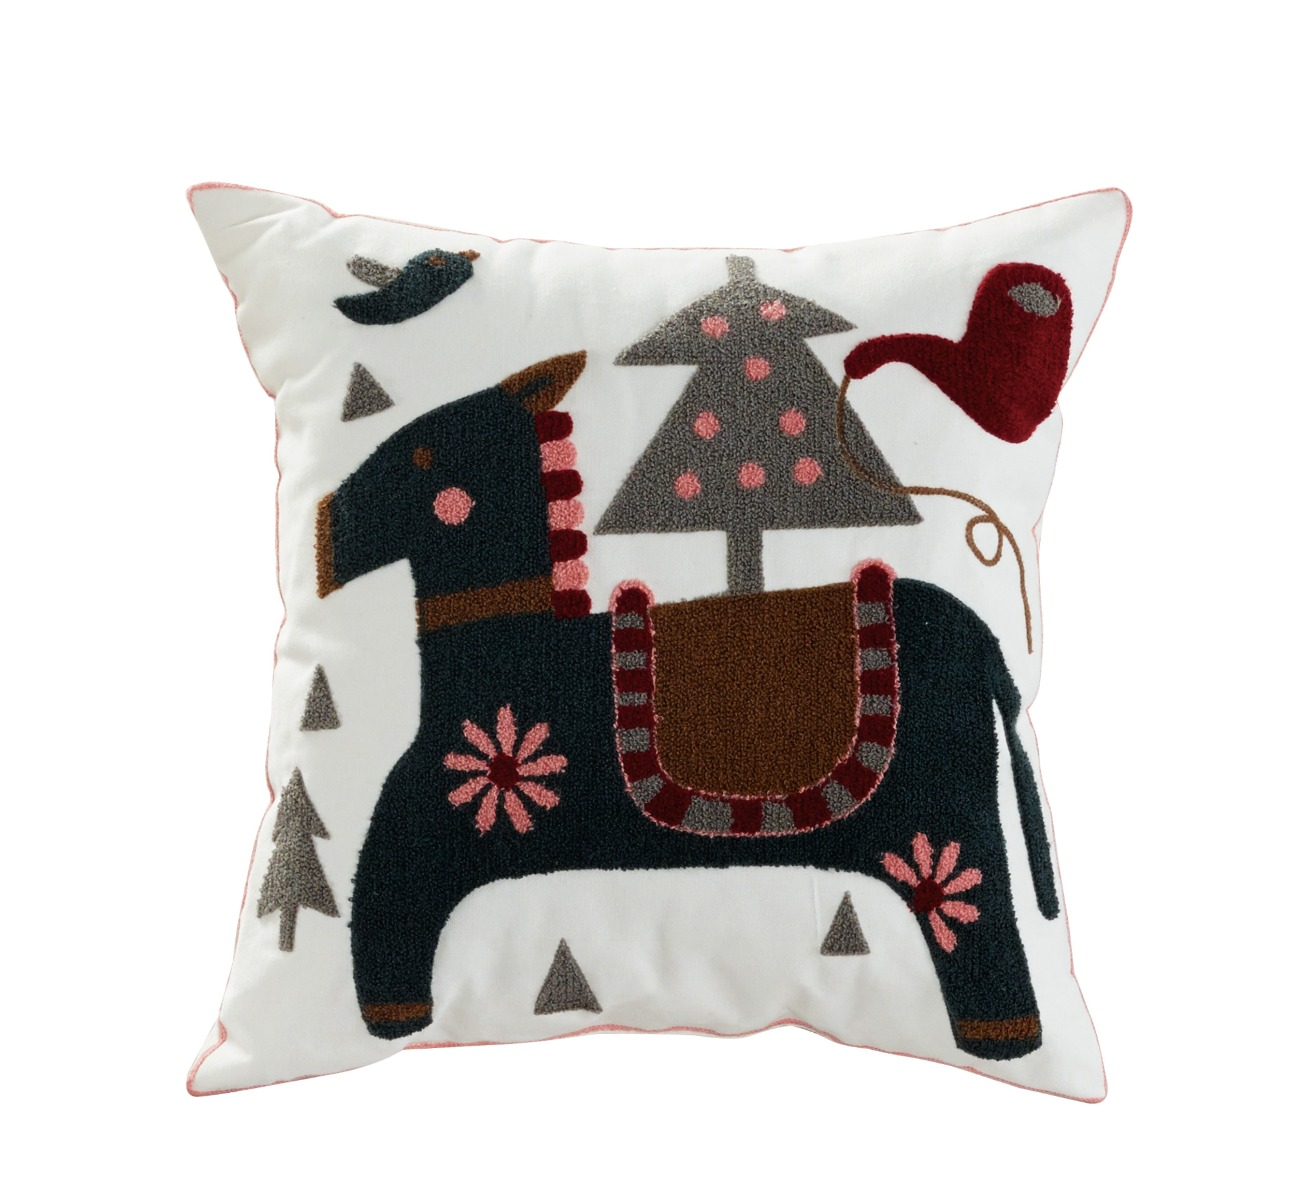 Colt Embroidered Cotton Throw Pillow - Elight Home 70018